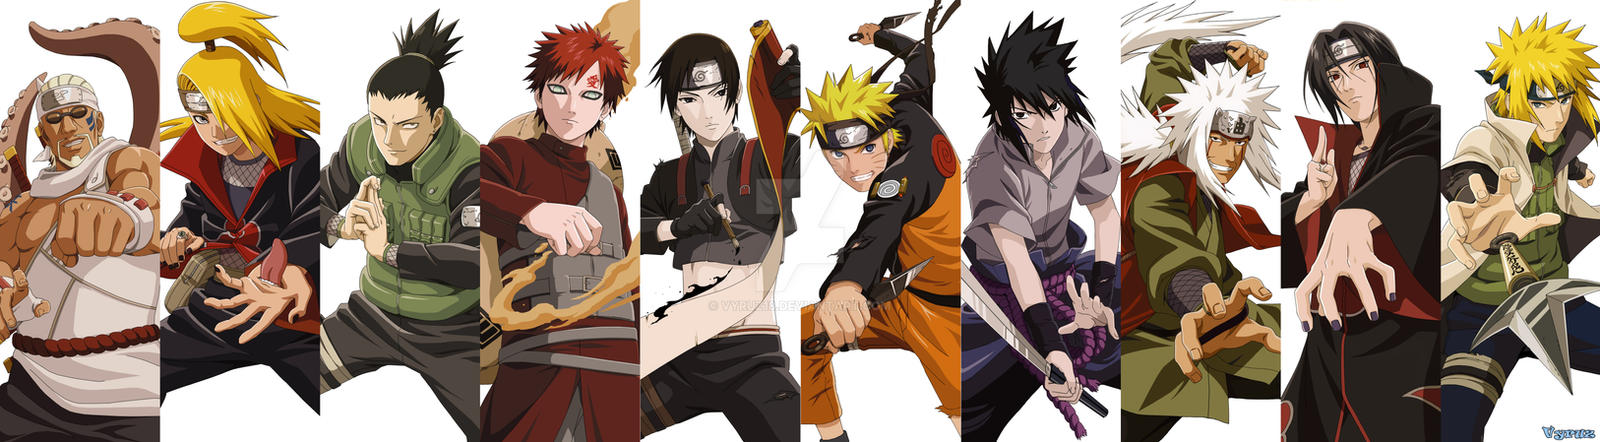 naruto mural 10 15 characters finished by vyruz18 on